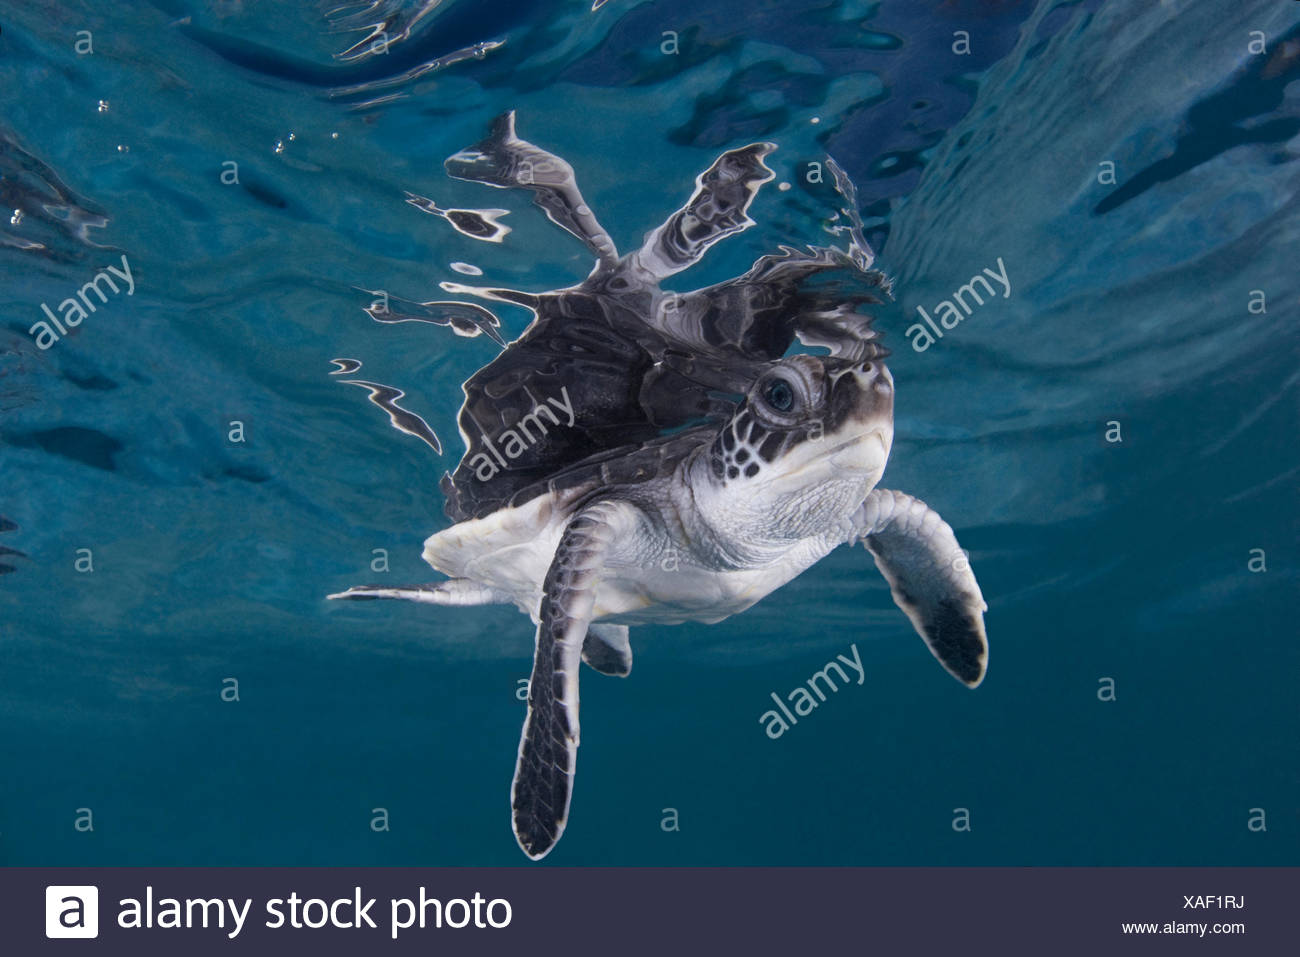 Green sea turtle (Chelonia mydas) hatchling swimming, Endangered, Caribbean, captive, digitally enhanced - Stock Image